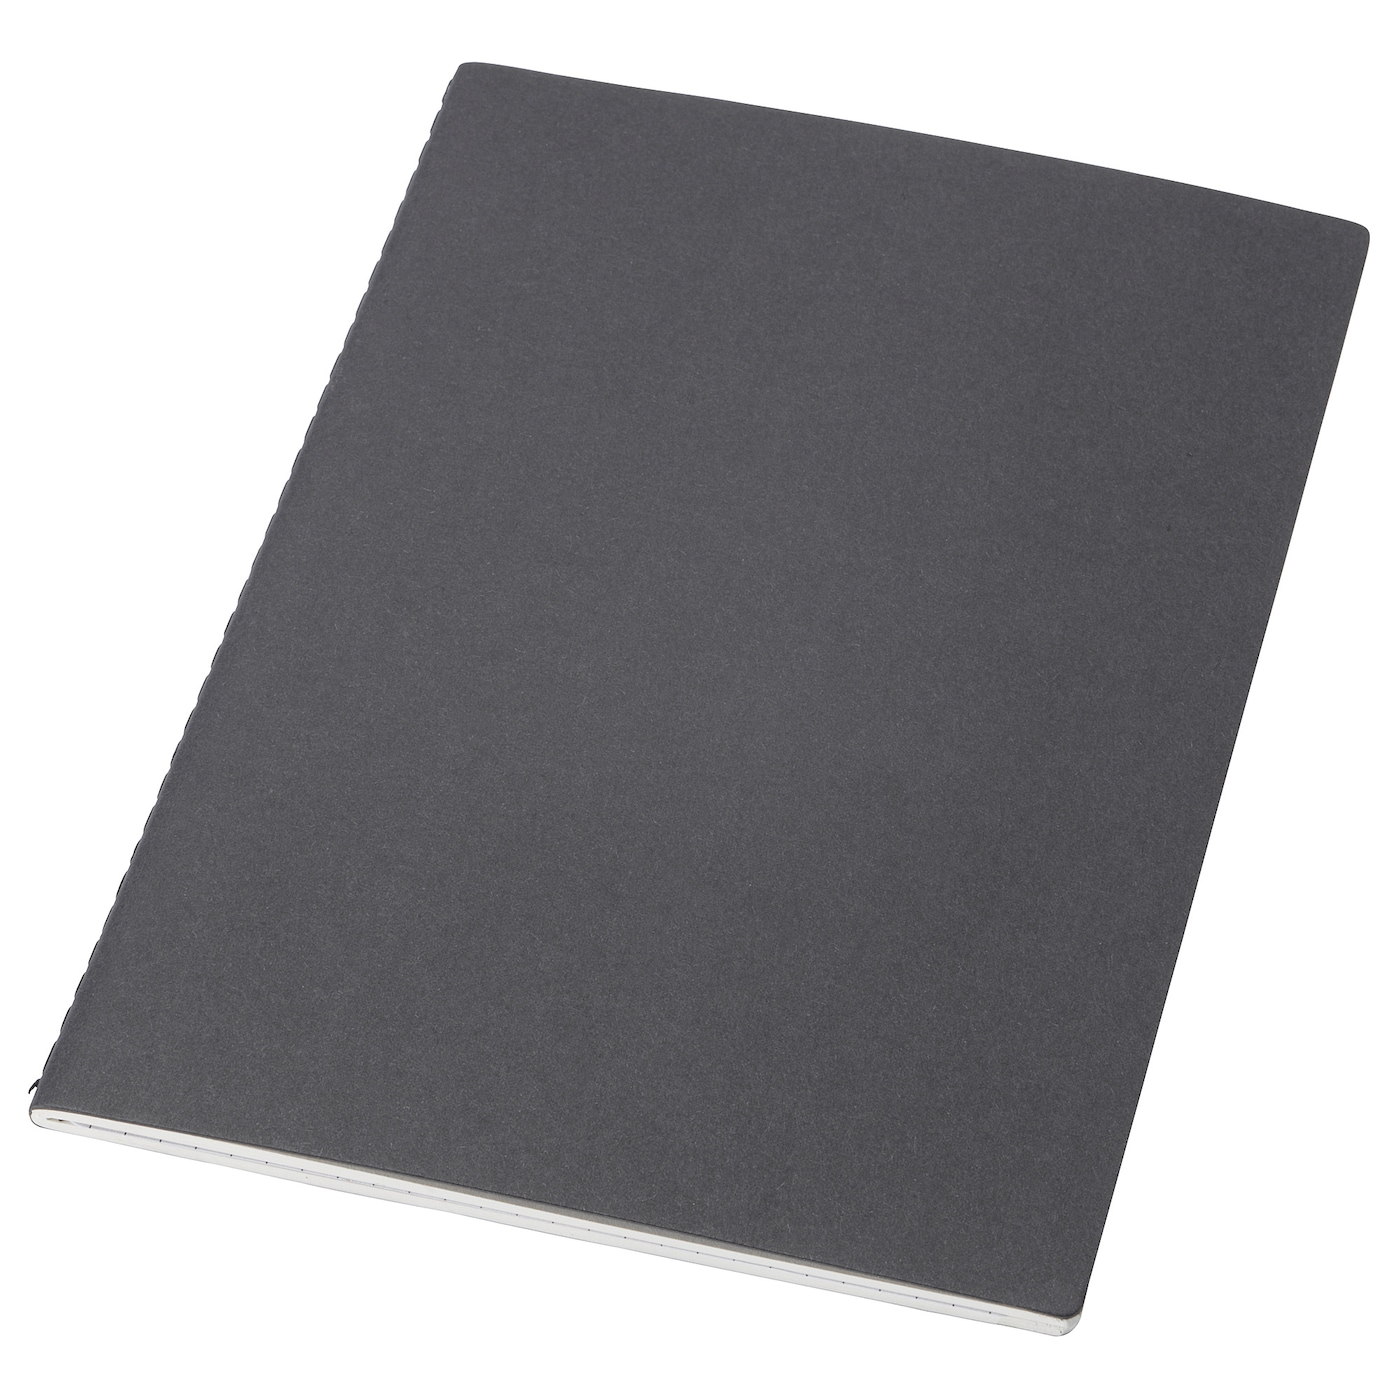 IKEA FULLFÖLJA note-book The notebook's shape lasts longer thanks to the rounded corners.